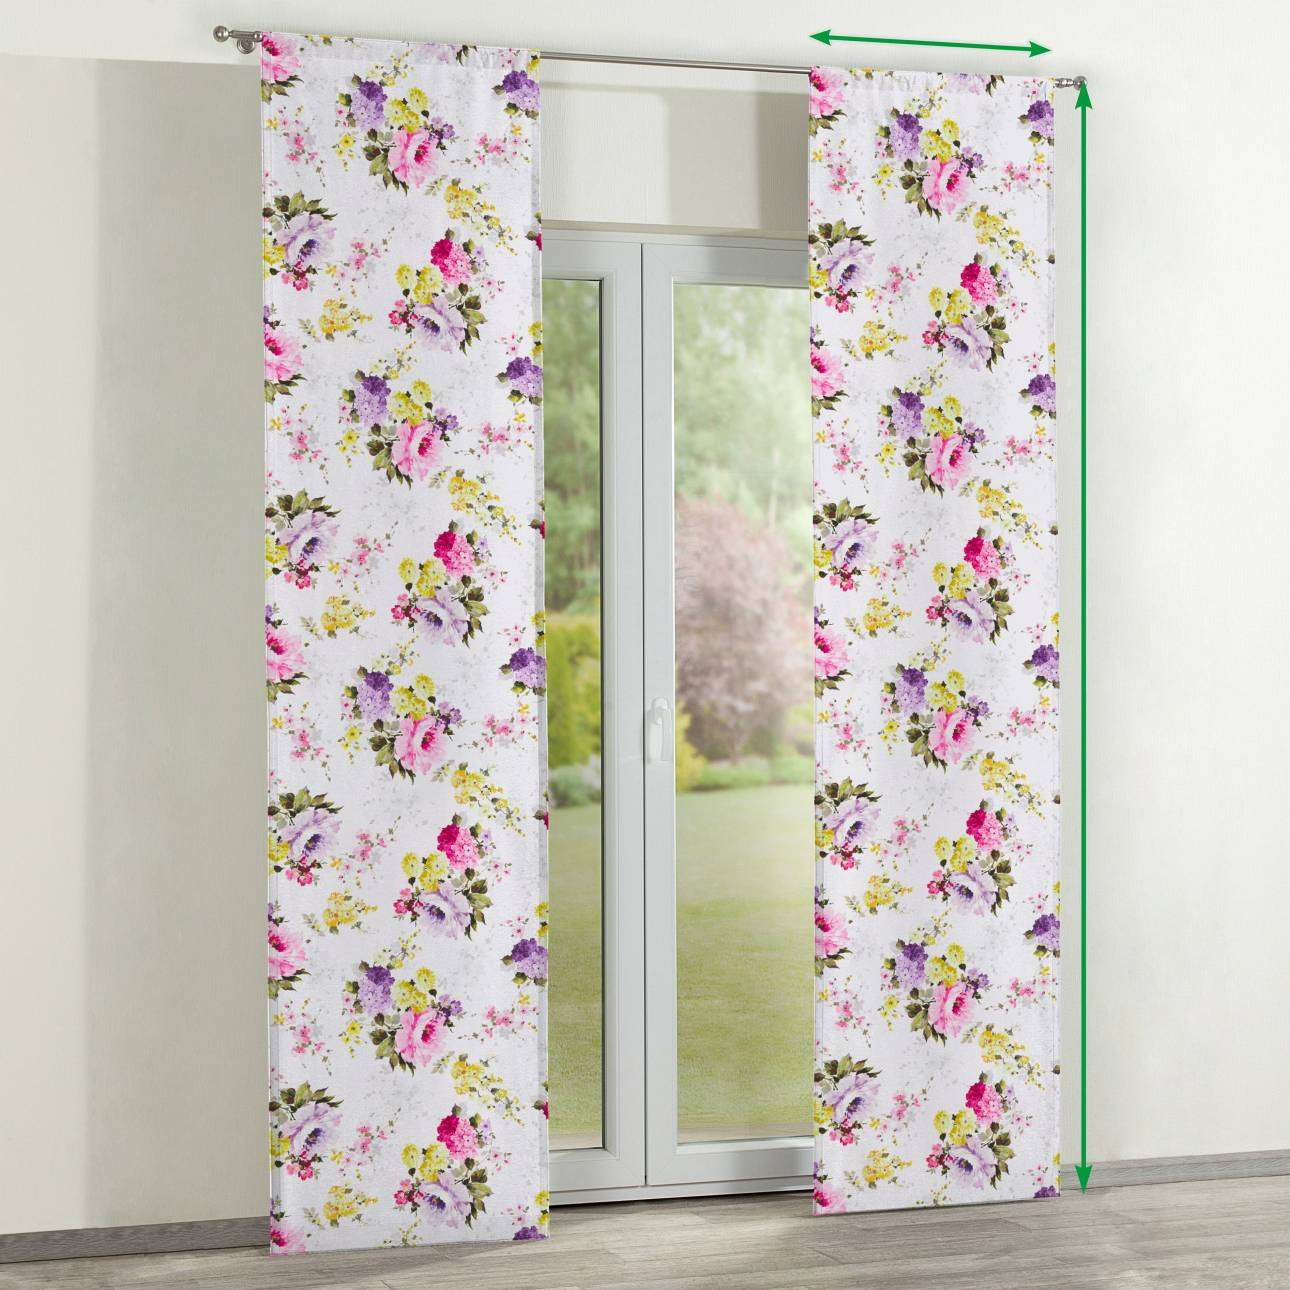 Slot panel curtains – Set of 2 in collection Monet, fabric: 140-00